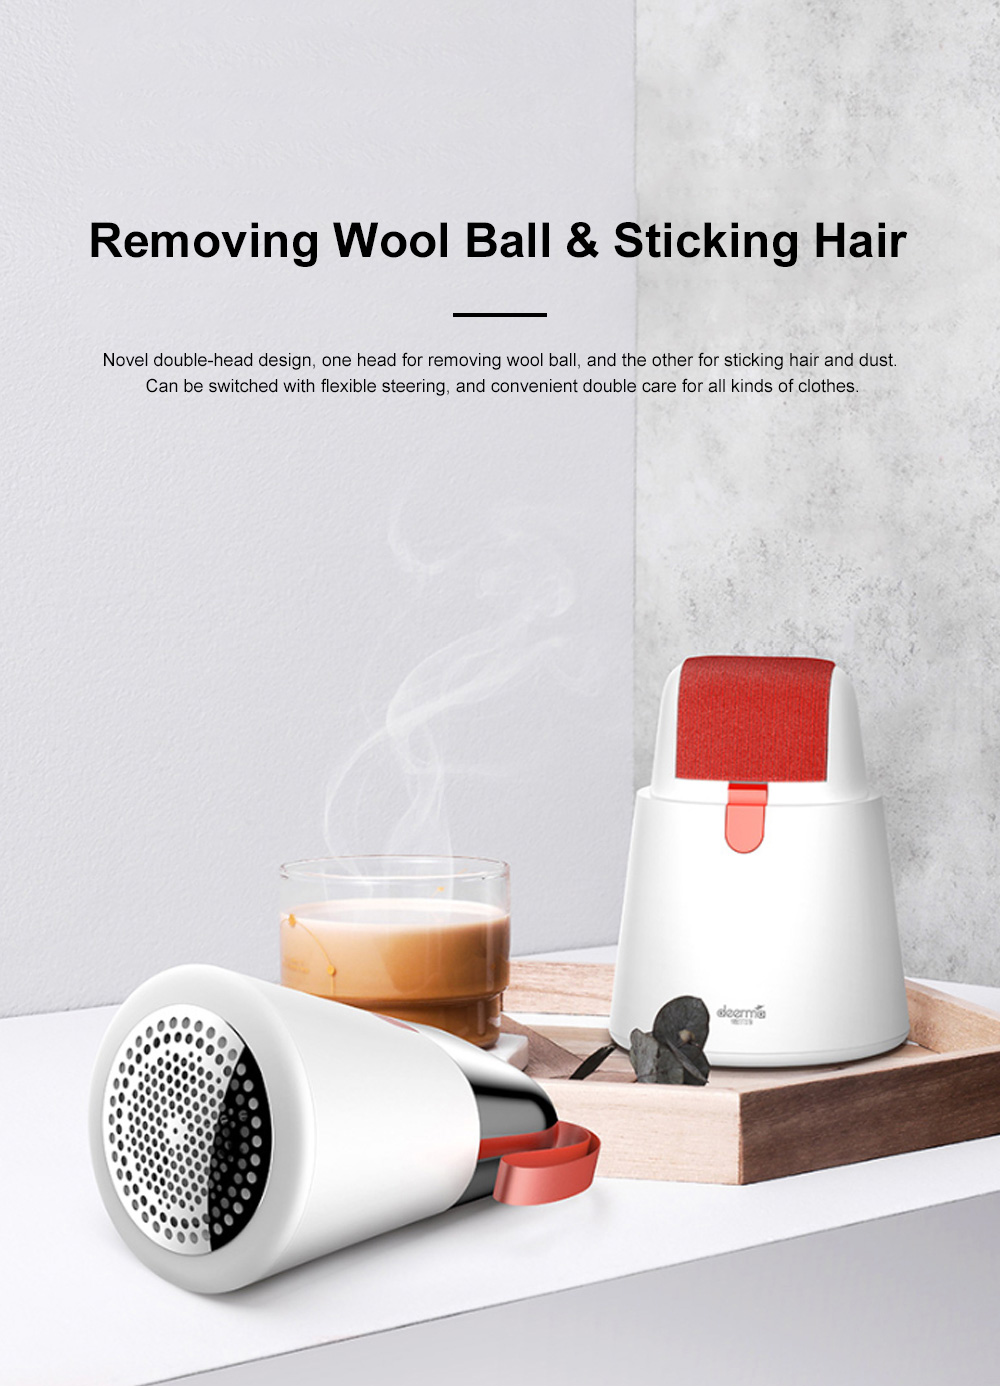 DEERMA 2 in 1 Hair Ball Fuzzing Trimmer USB Rechargeable Fabric Remover with 3-leaf Floating Head for Sweater Clothes Care 2